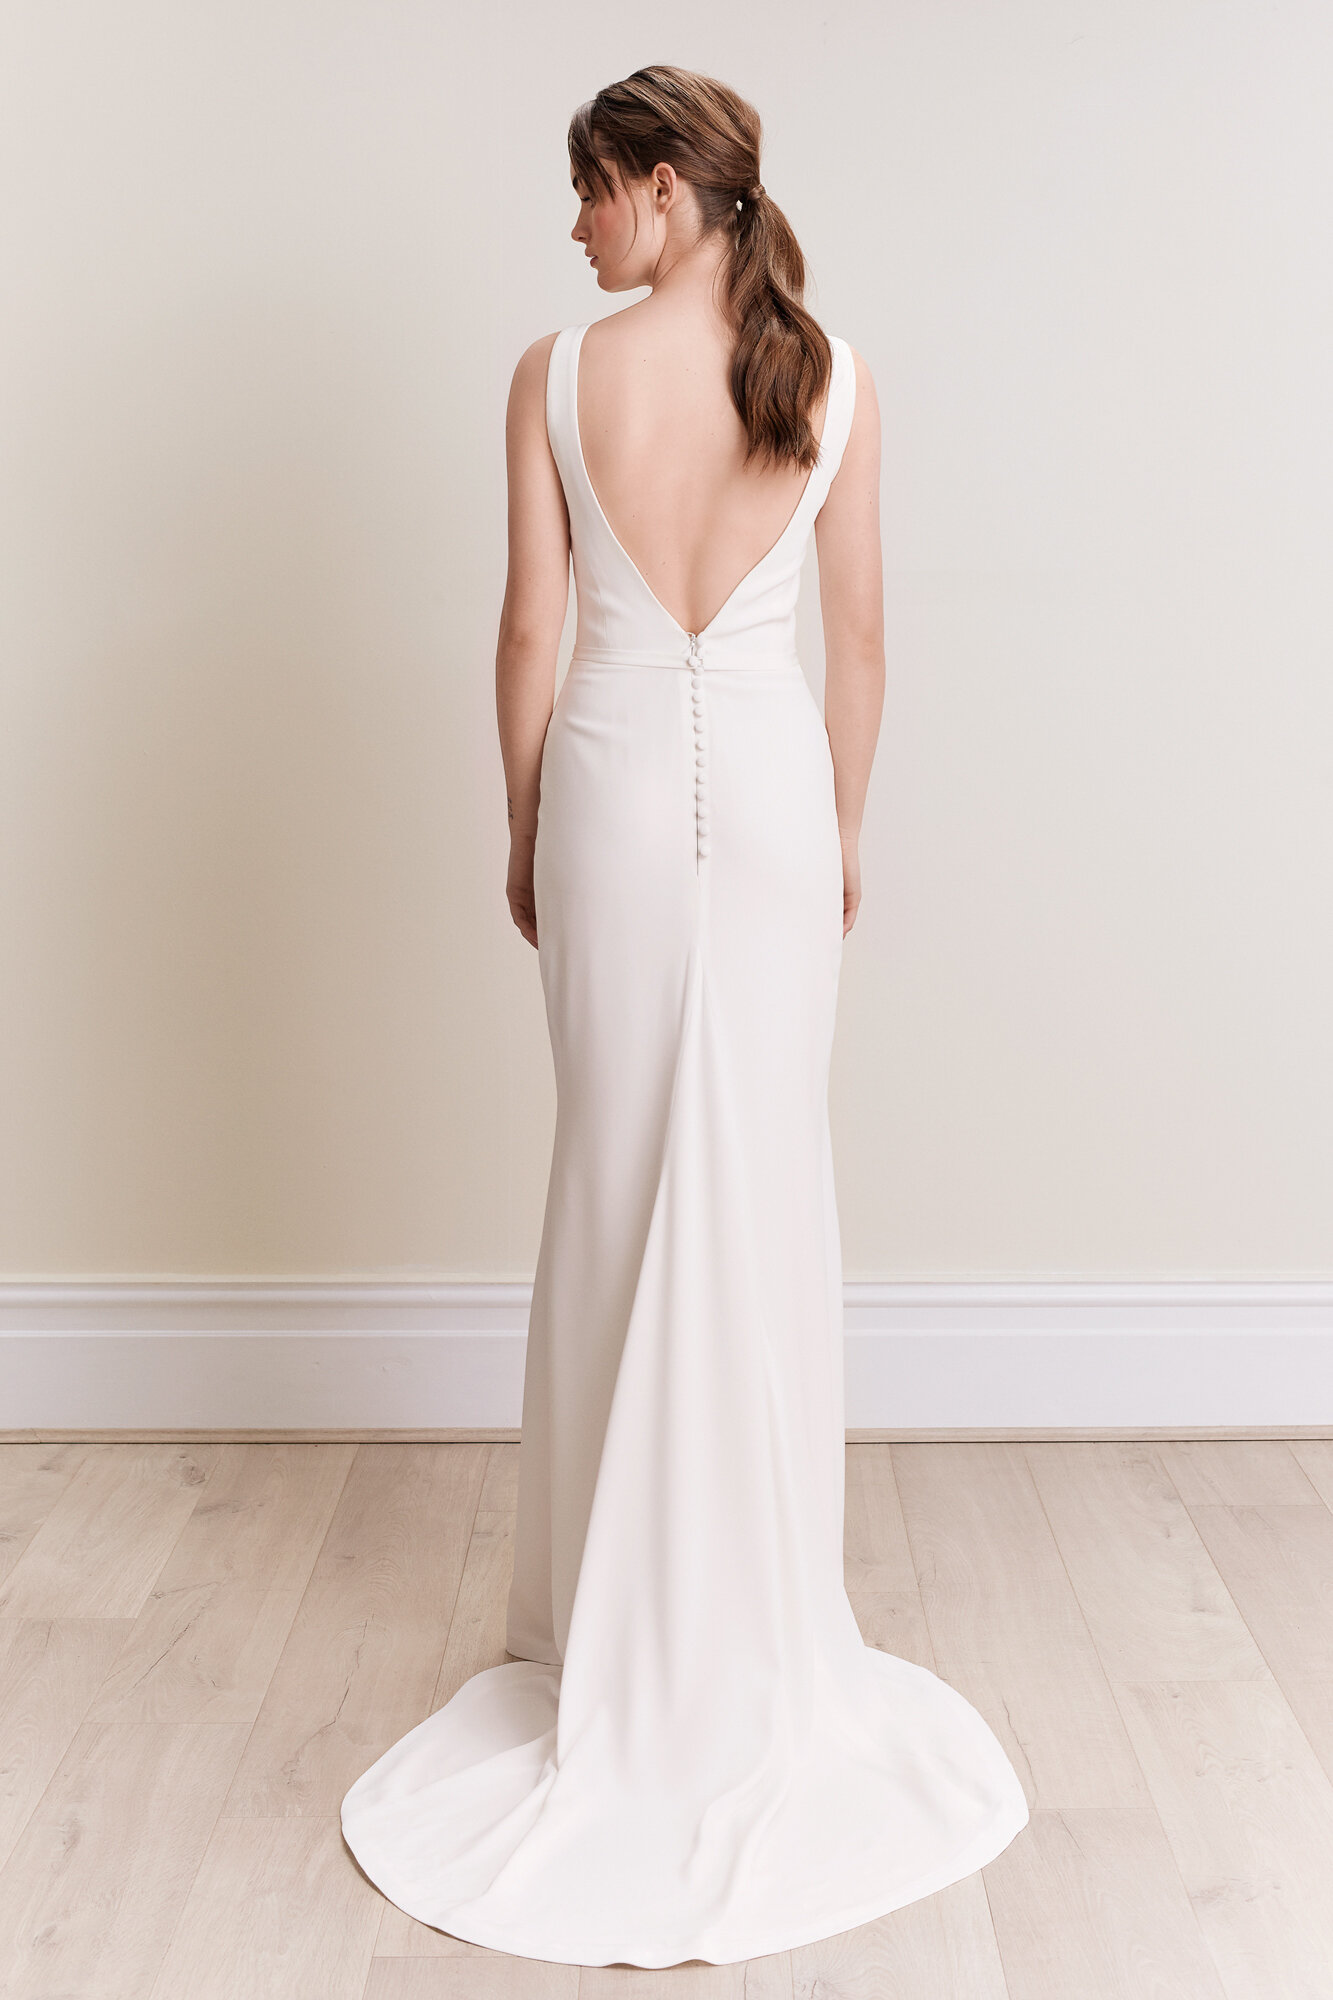 Sarina_Tavra_Bridal_Couture_2020_Collection_Maisie_Gown_03